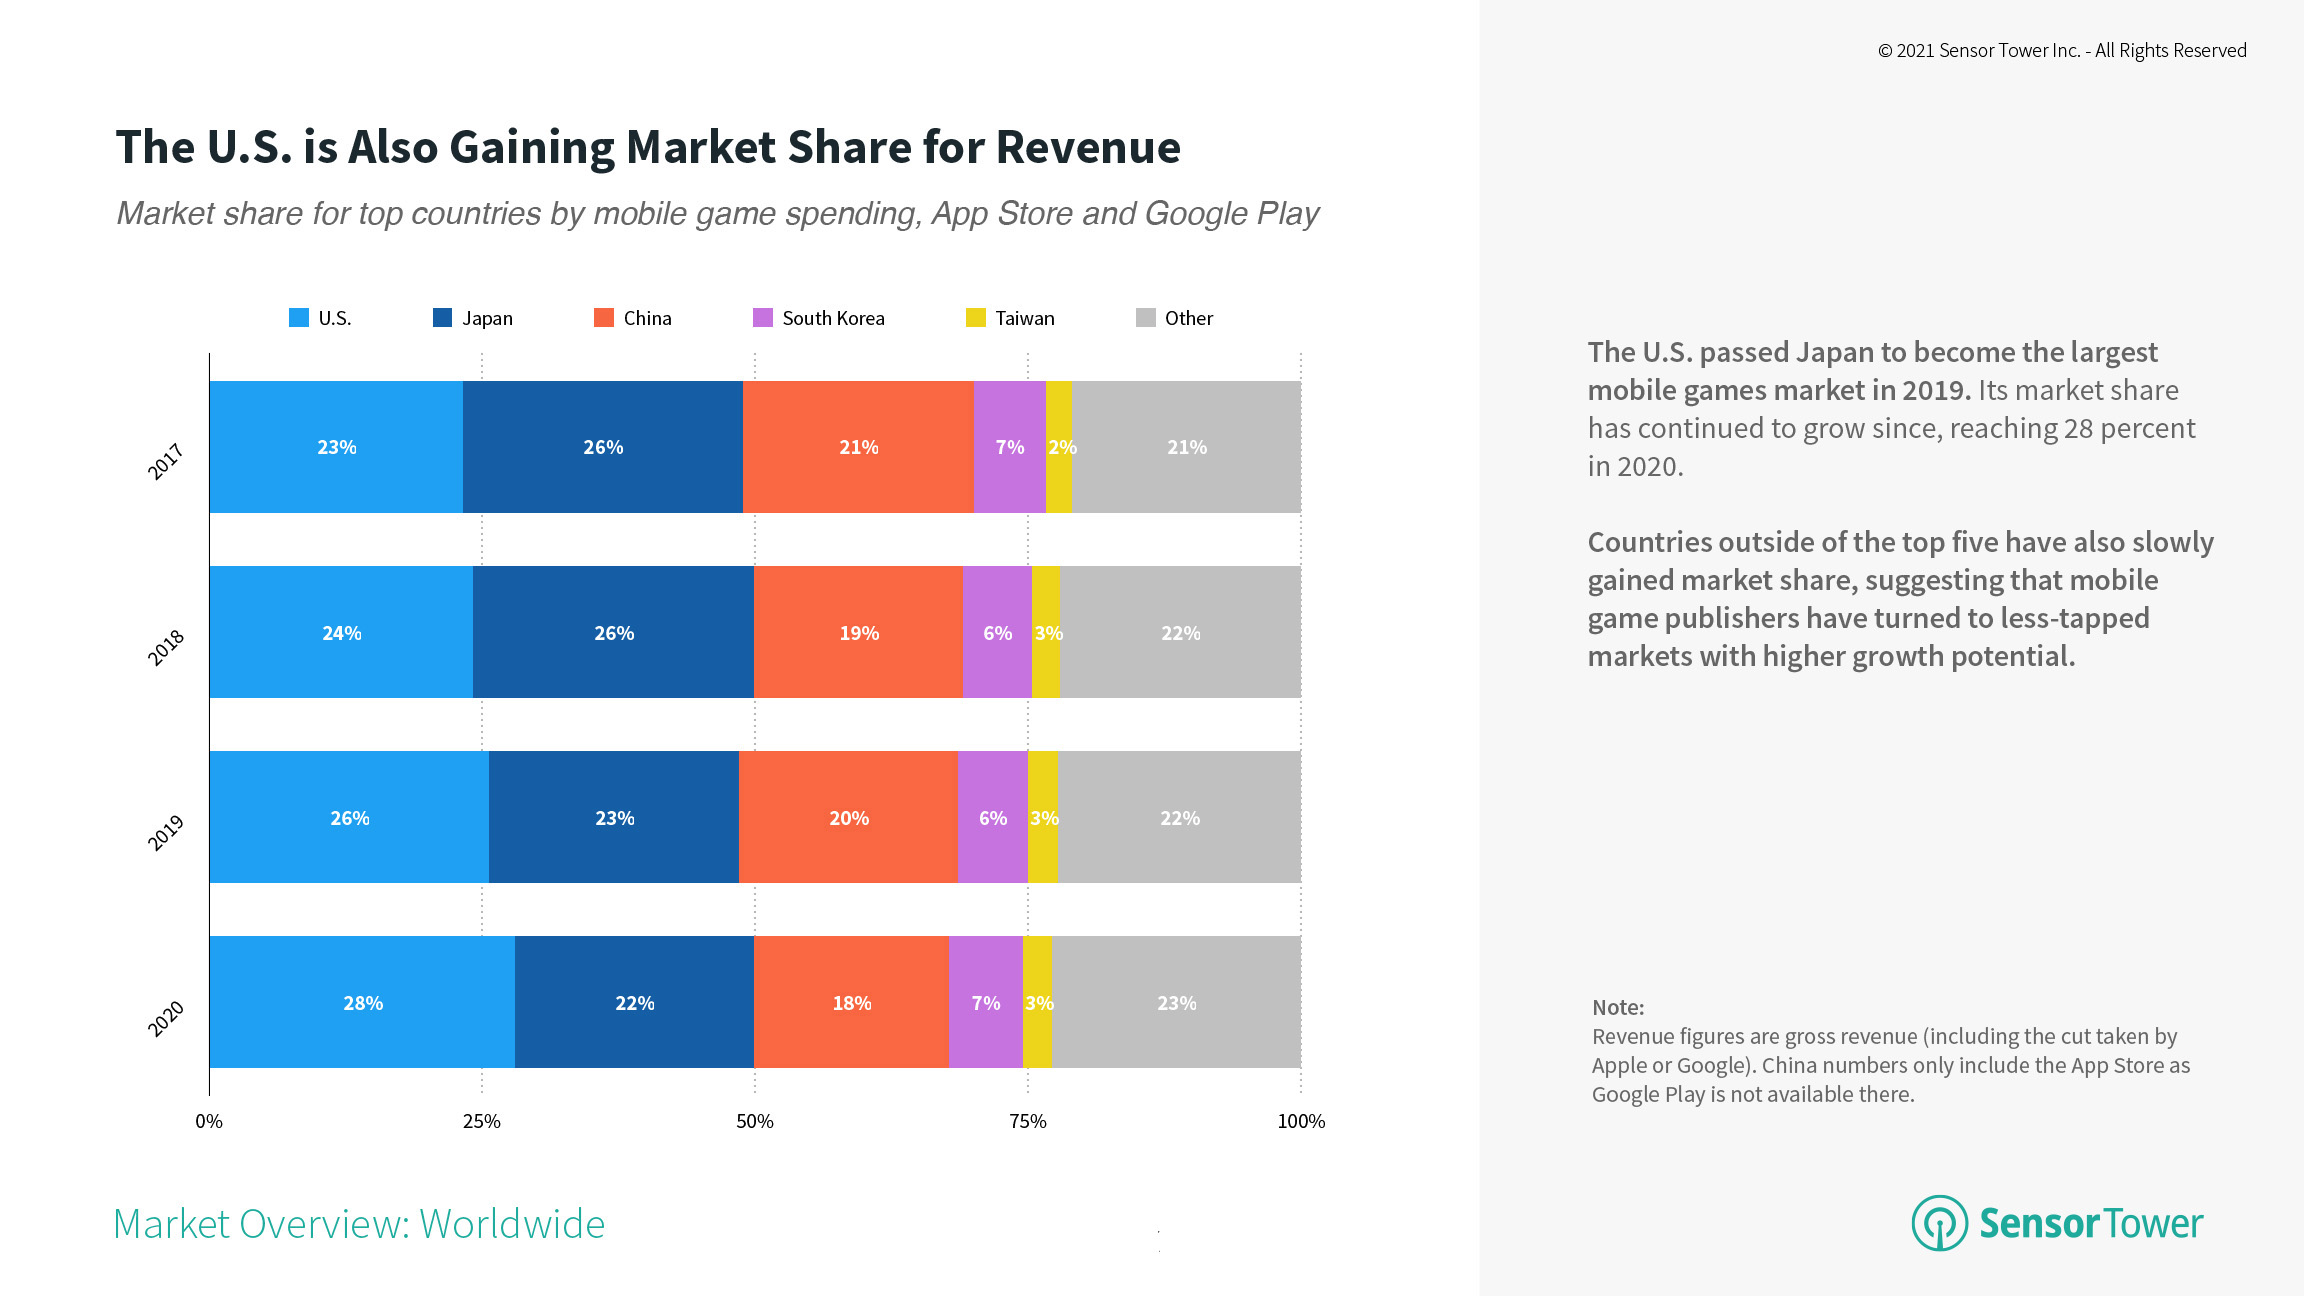 Market share for top countries by mobile game spending 2017 to 2020